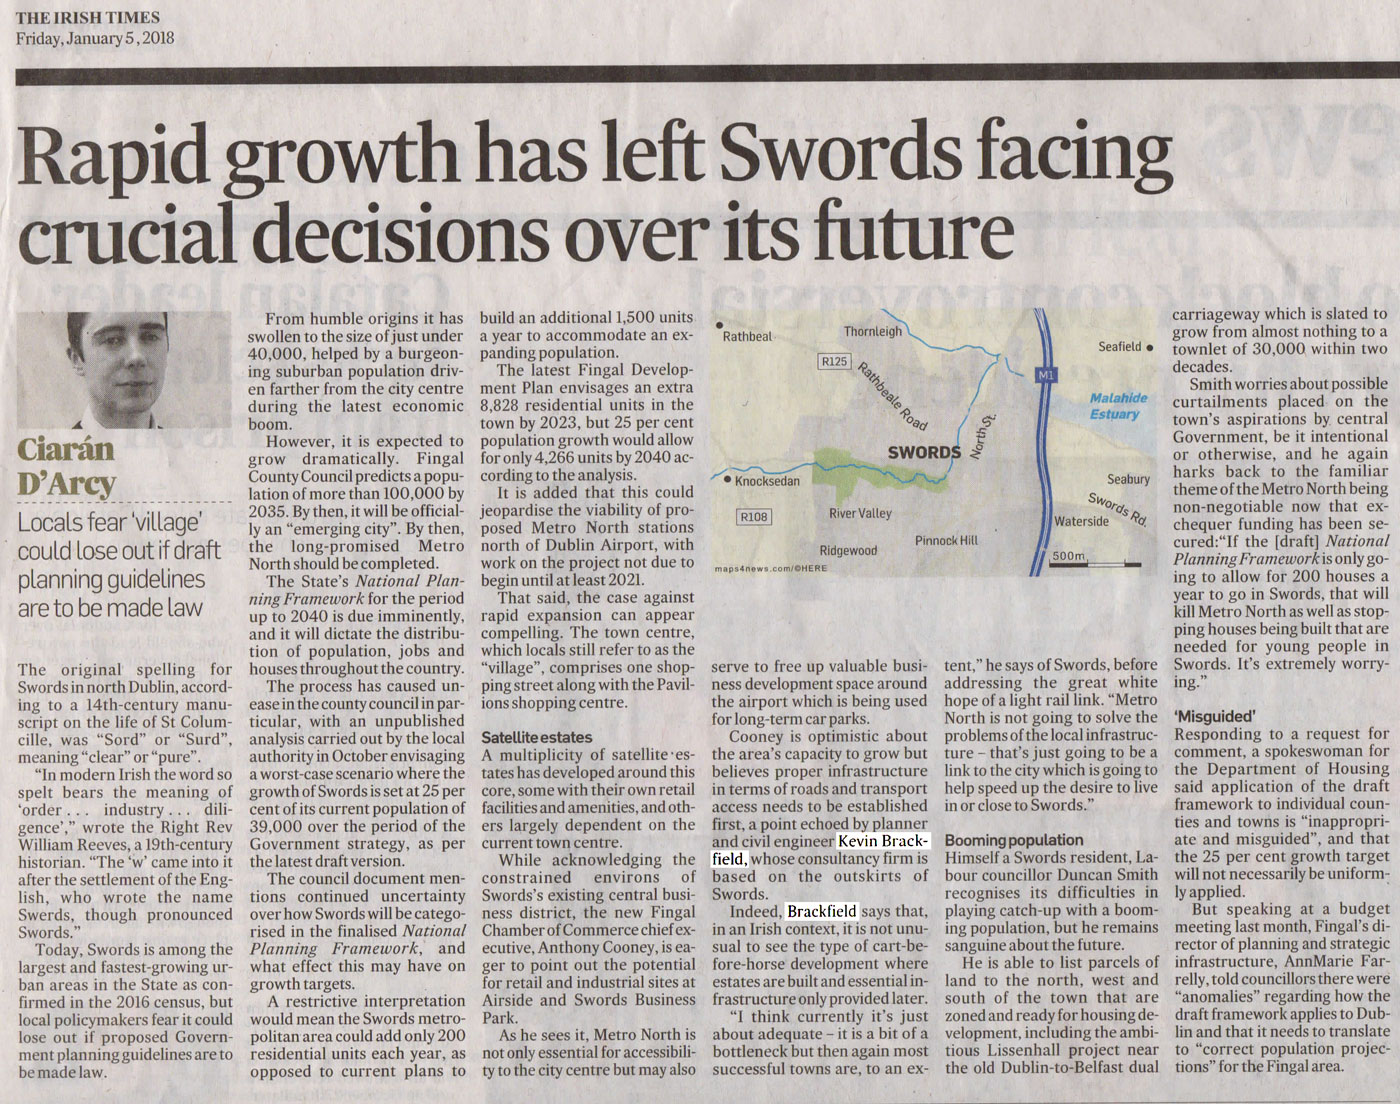 Kevin Brackfield comments in 'The Irish Times' on the rapid growth of Swords and the need for proper planning and infrastructure.